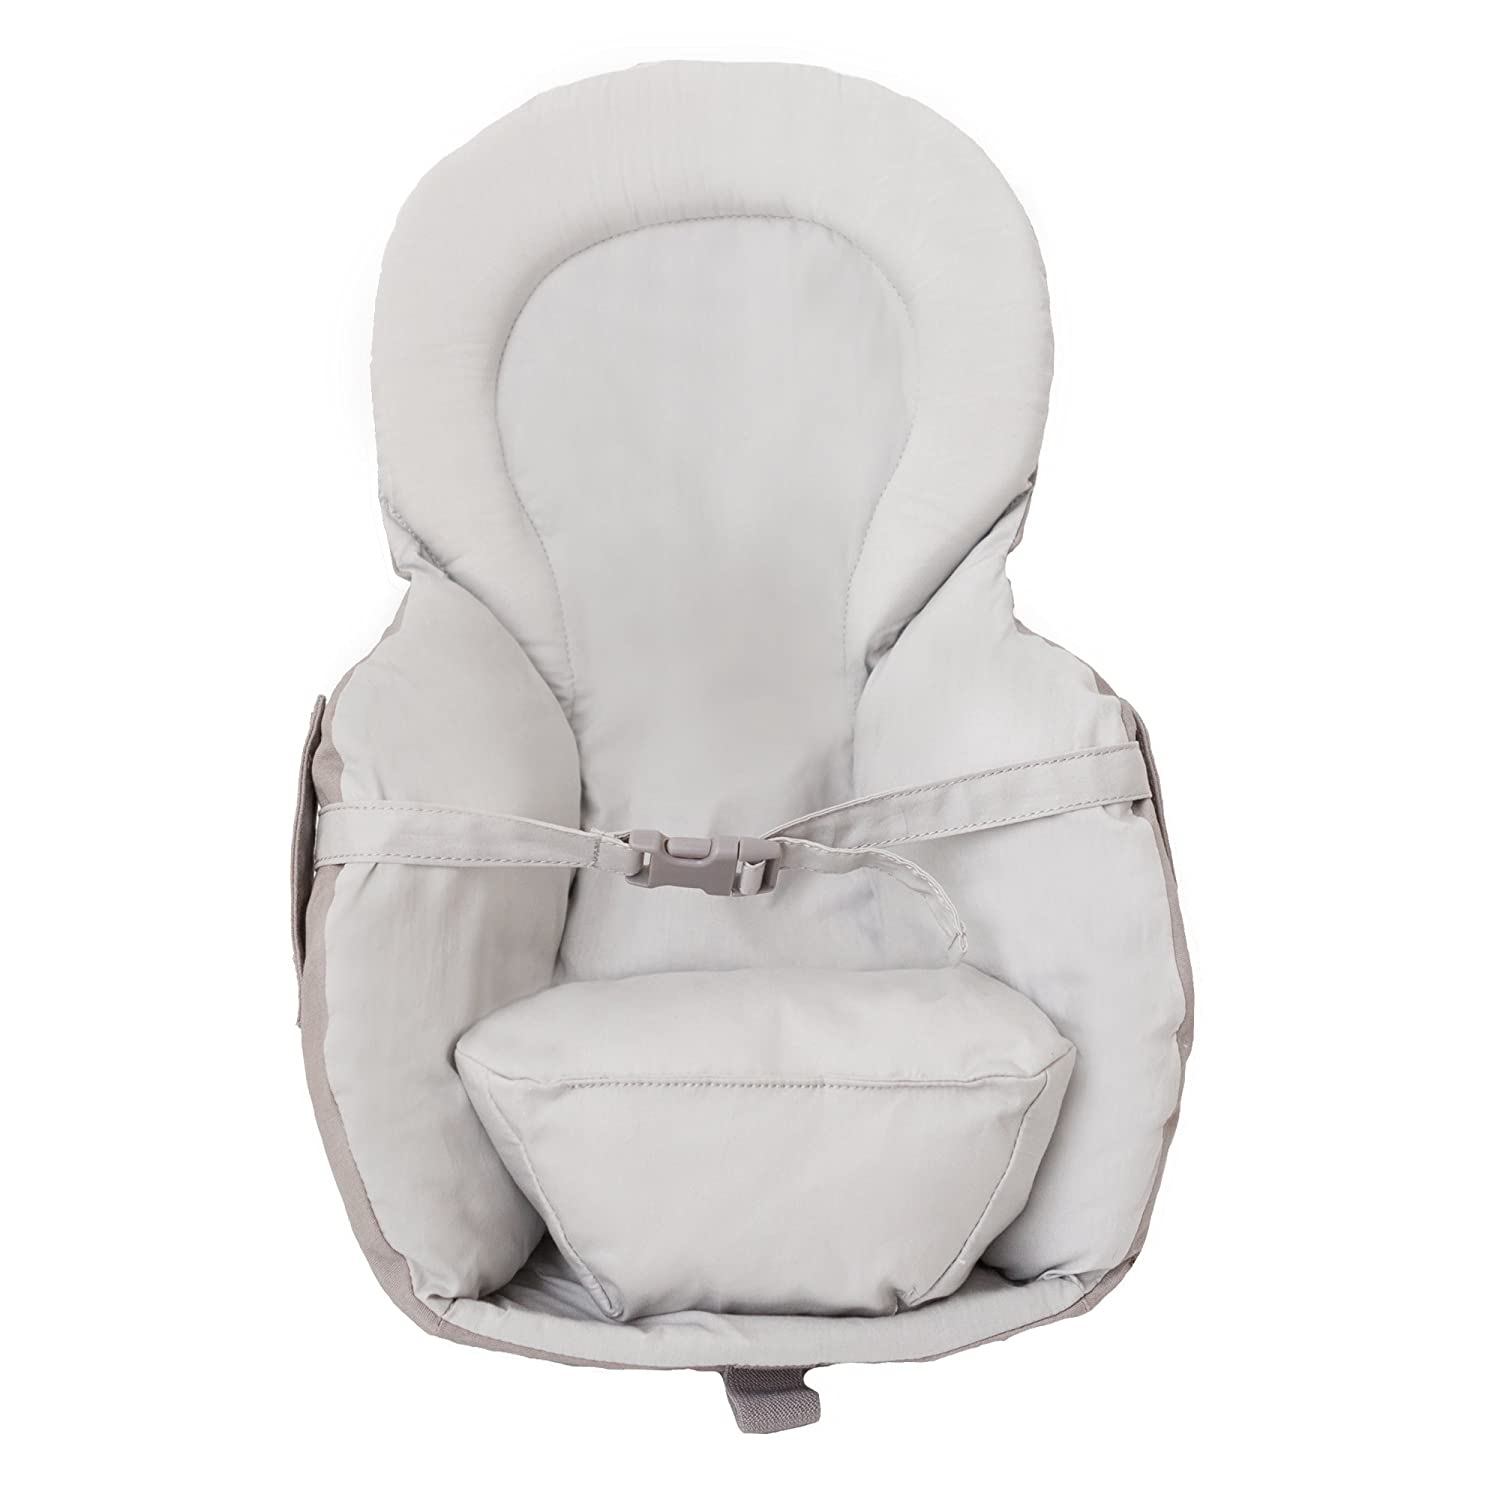 LÍLLÉbaby Infant Insert, Grey - Ergonomic Insert with Removeable Pillow for Baby Carrier LILLEbaby ASC-LL-101